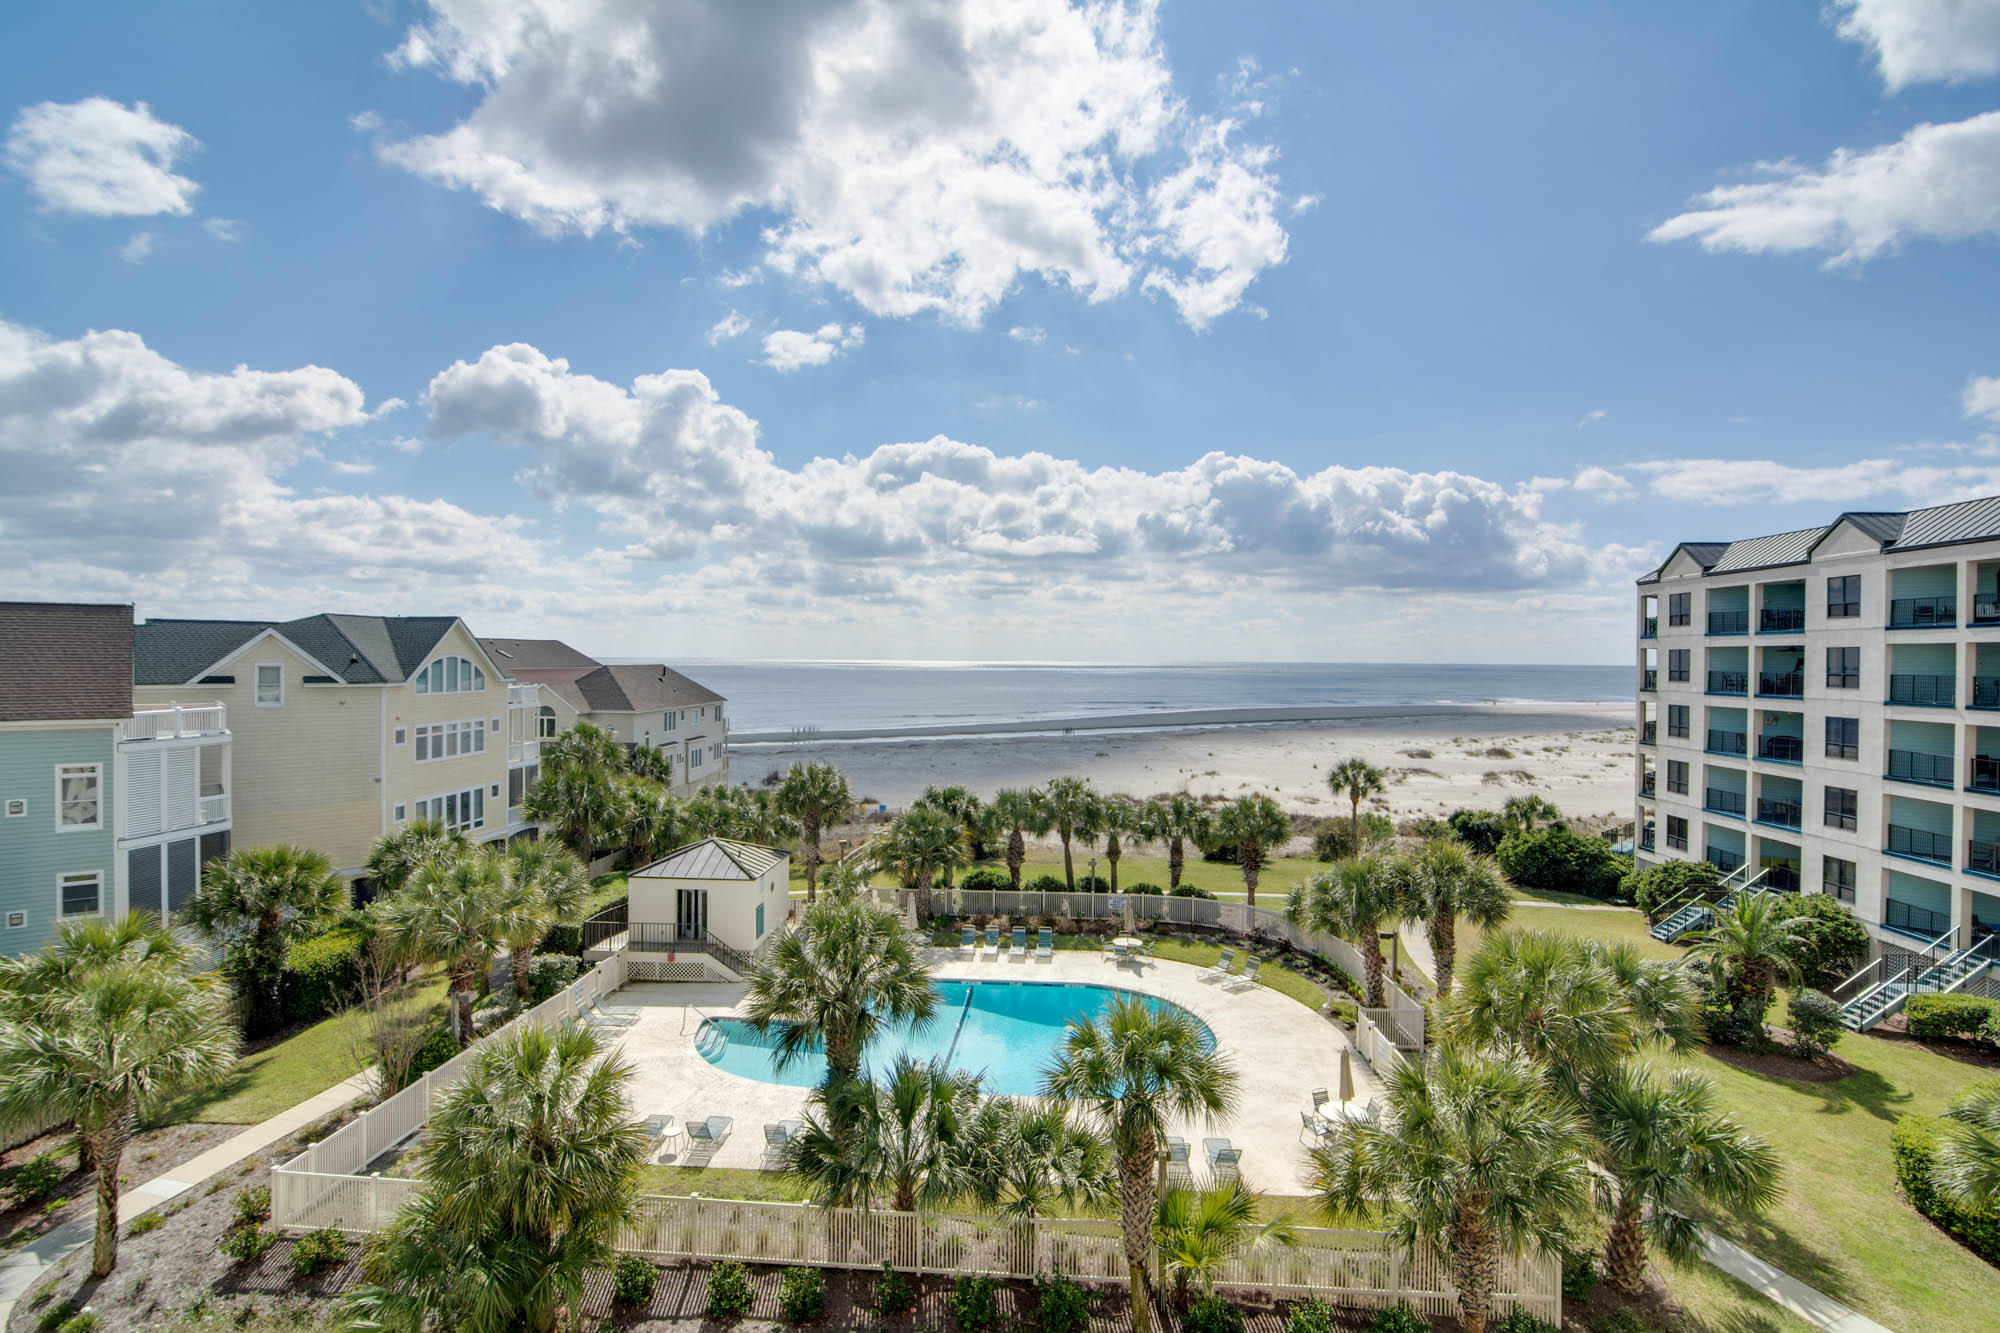 Wild Dunes Homes For Sale - 210 Summerhouse, Isle of Palms, SC - 10